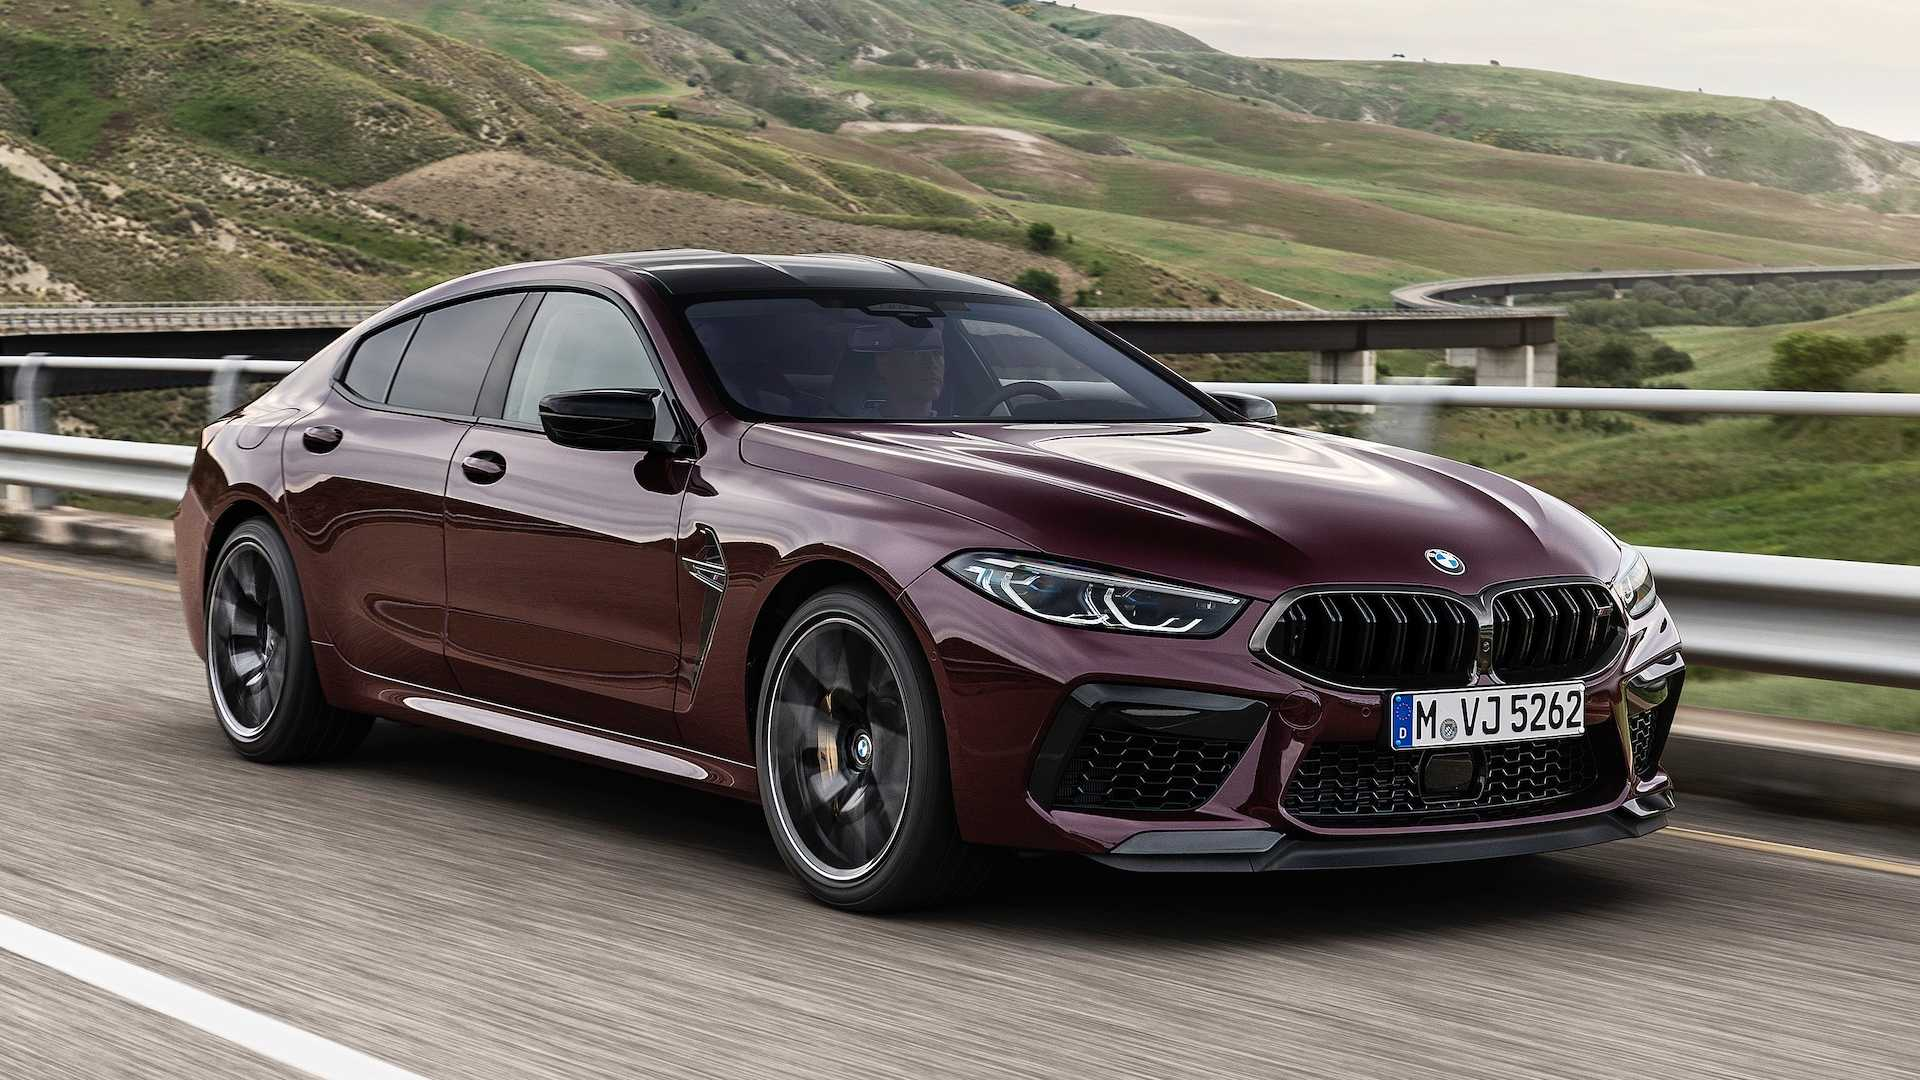 2020-bmw-m8-gran-coupe-competition-8